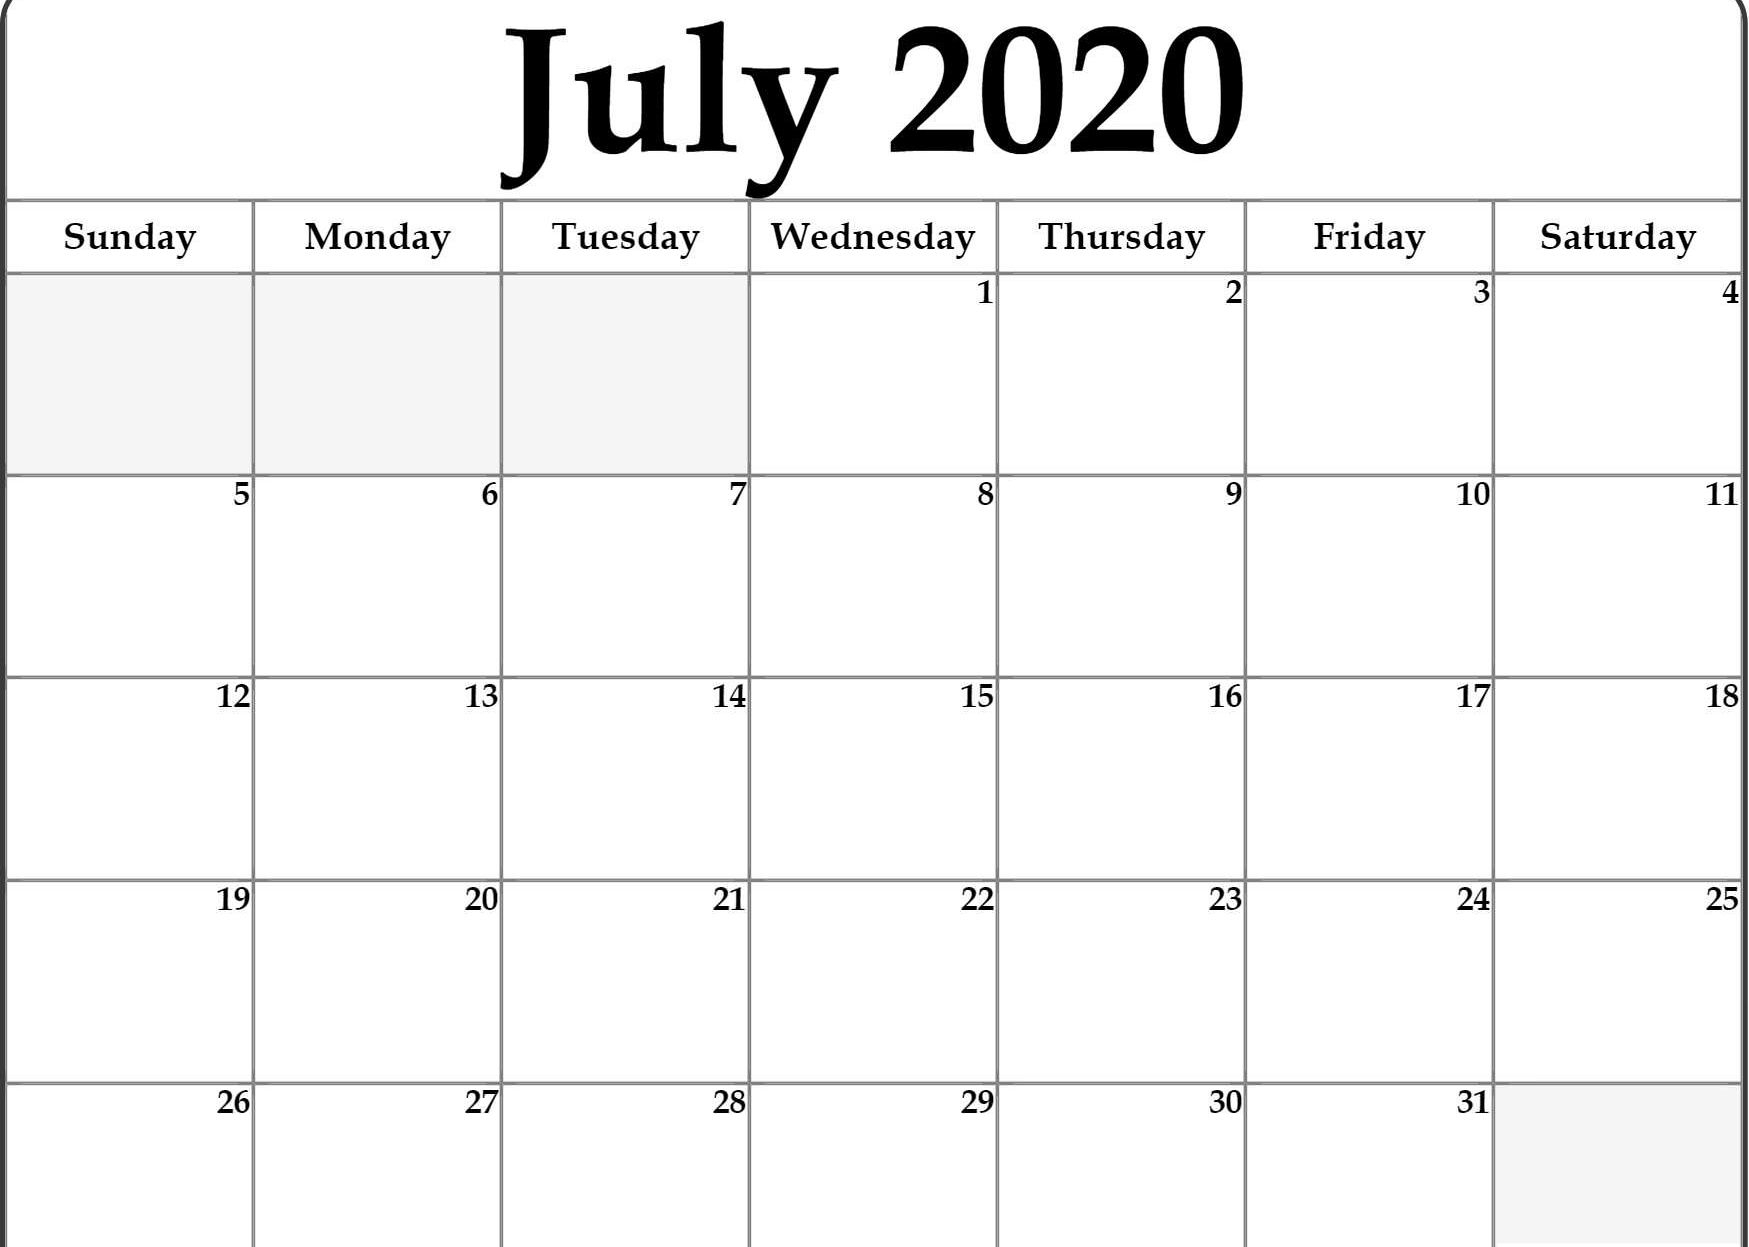 Printable Calendar For July 2020 | July Calendar, Printable pertaining to Monthly Fill In Calendar 2020